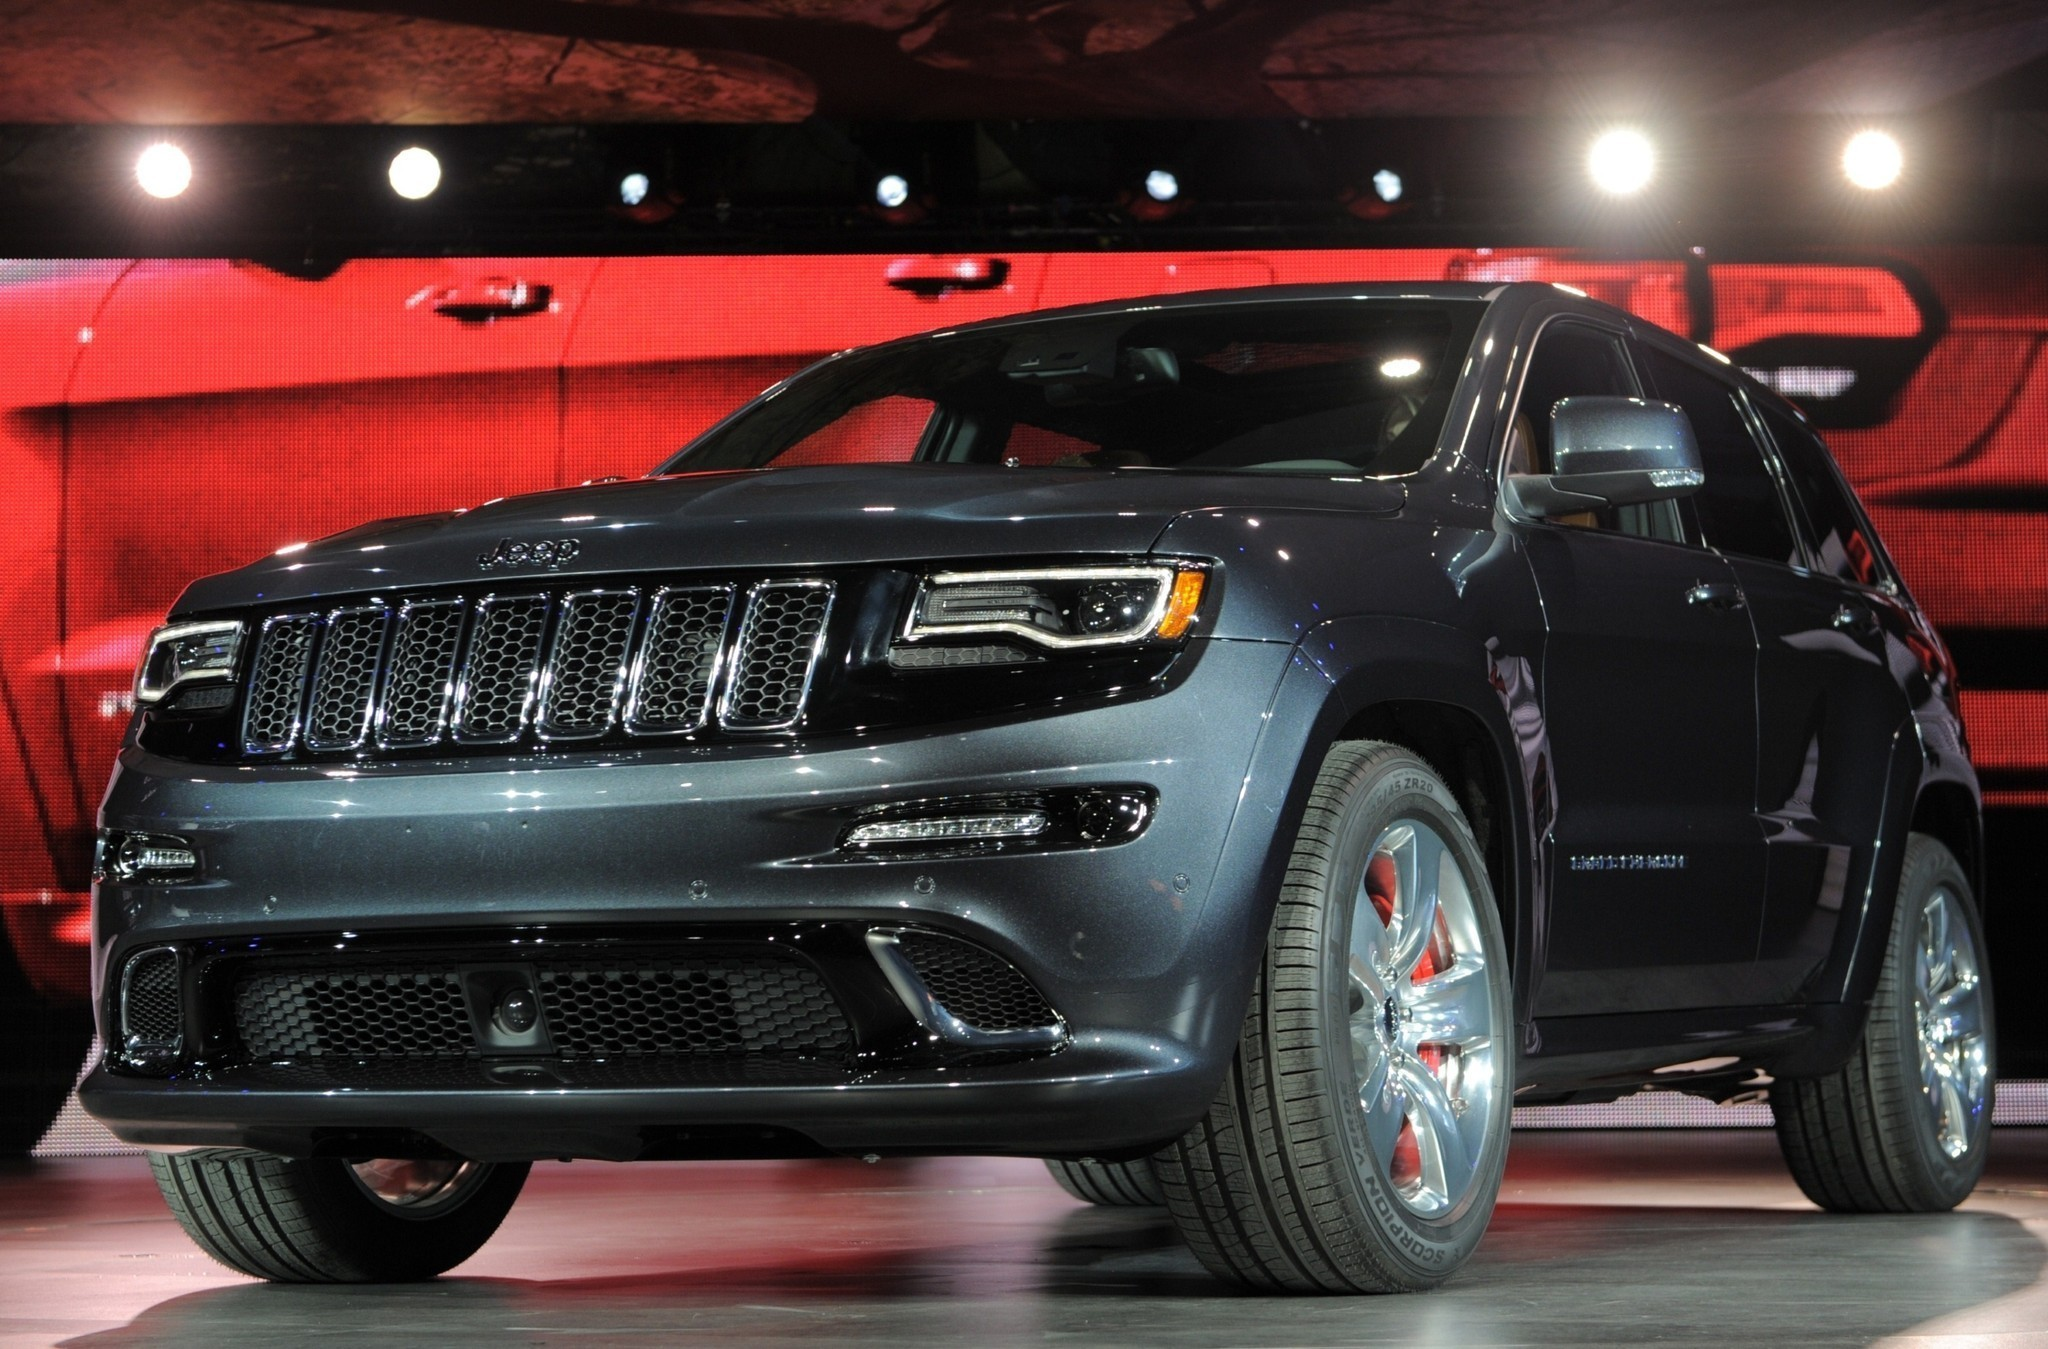 brake problems spur big jeep grand cherokee dodge durango recall the morning call. Black Bedroom Furniture Sets. Home Design Ideas